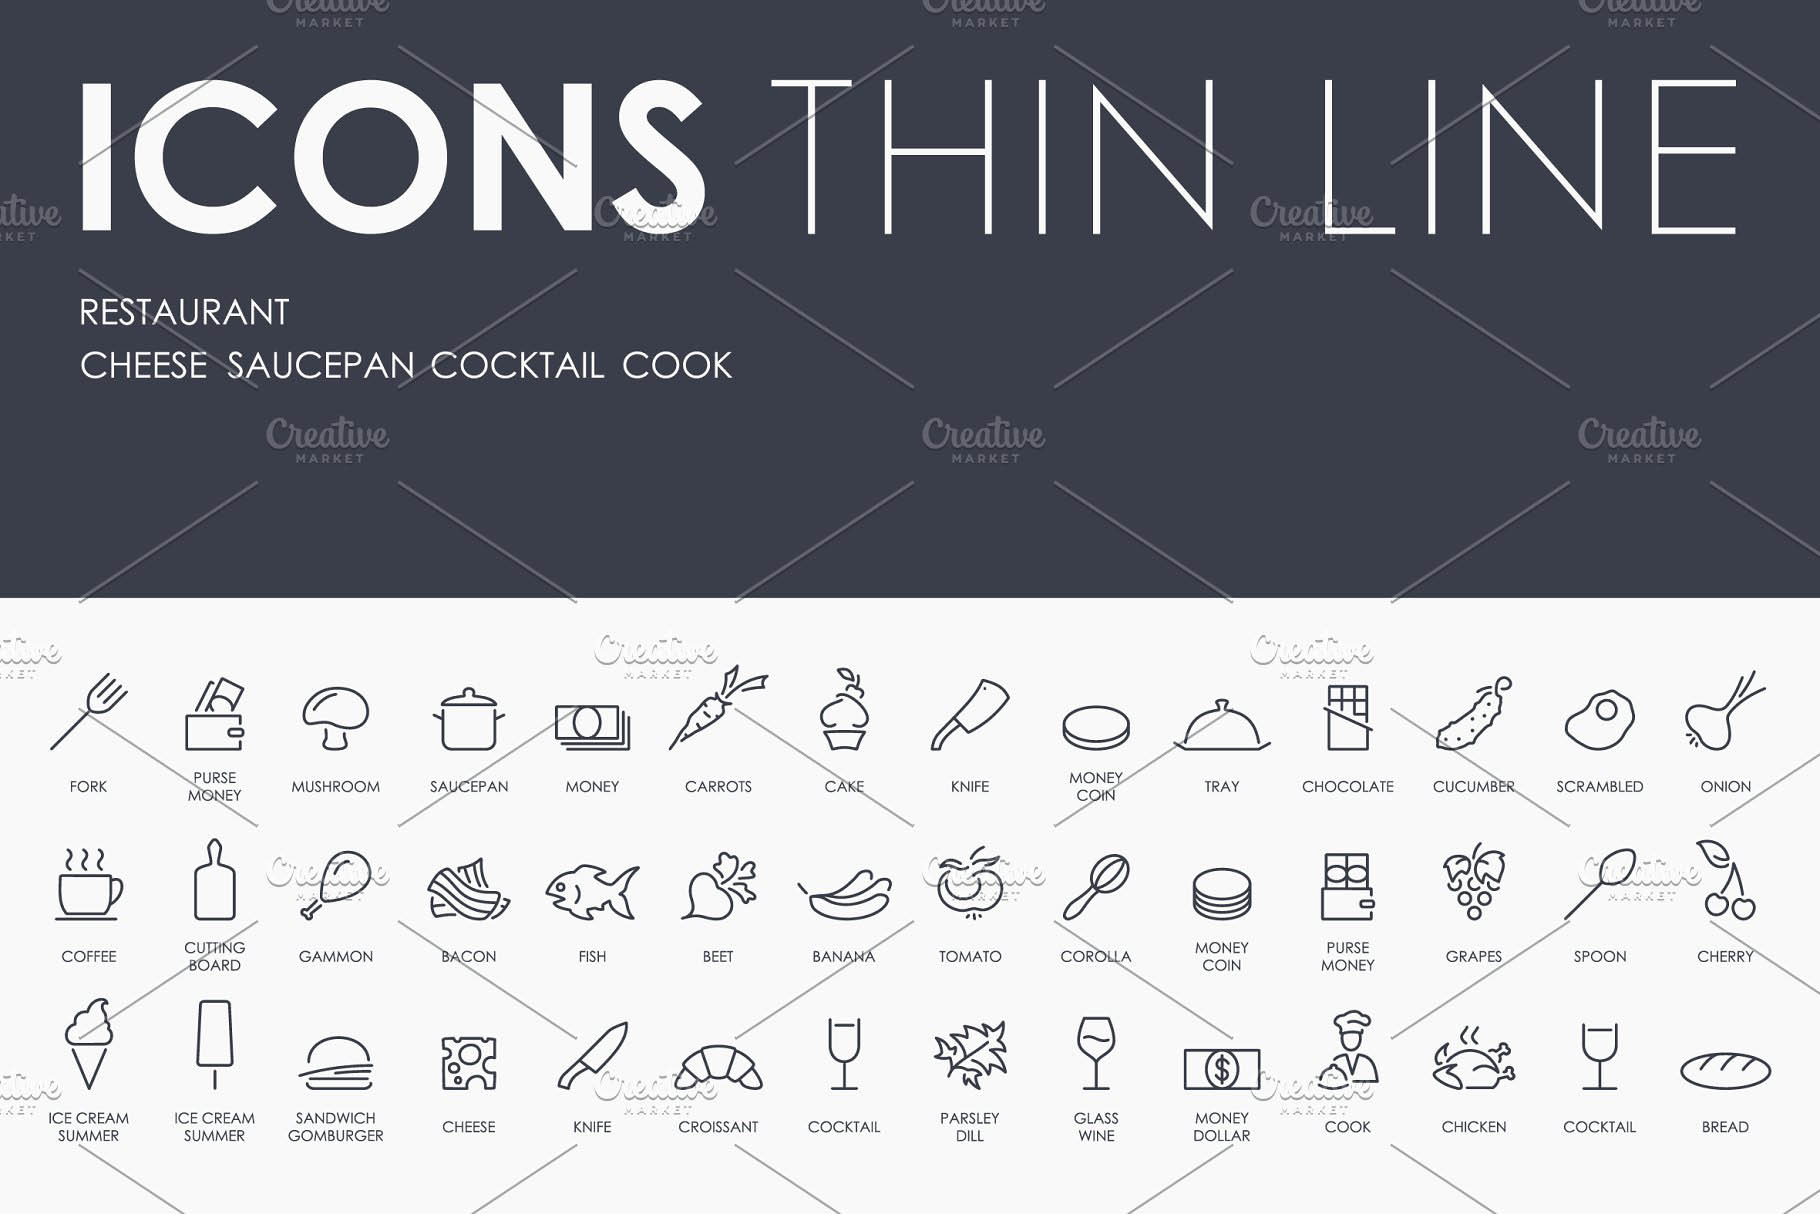 餐厅线型图标 Restaurant thinline icons